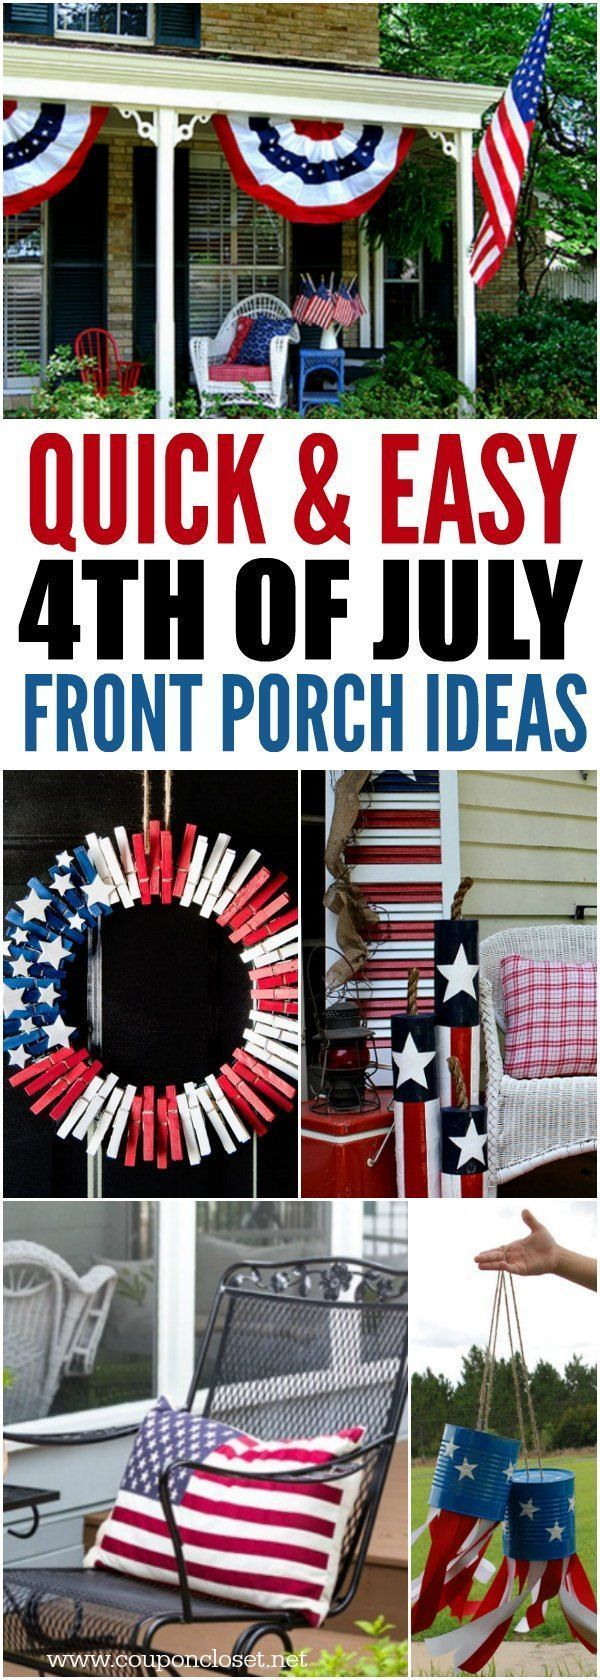 4th of July Front Porch Ideas- Patriotic front porch ideas for the 4th images